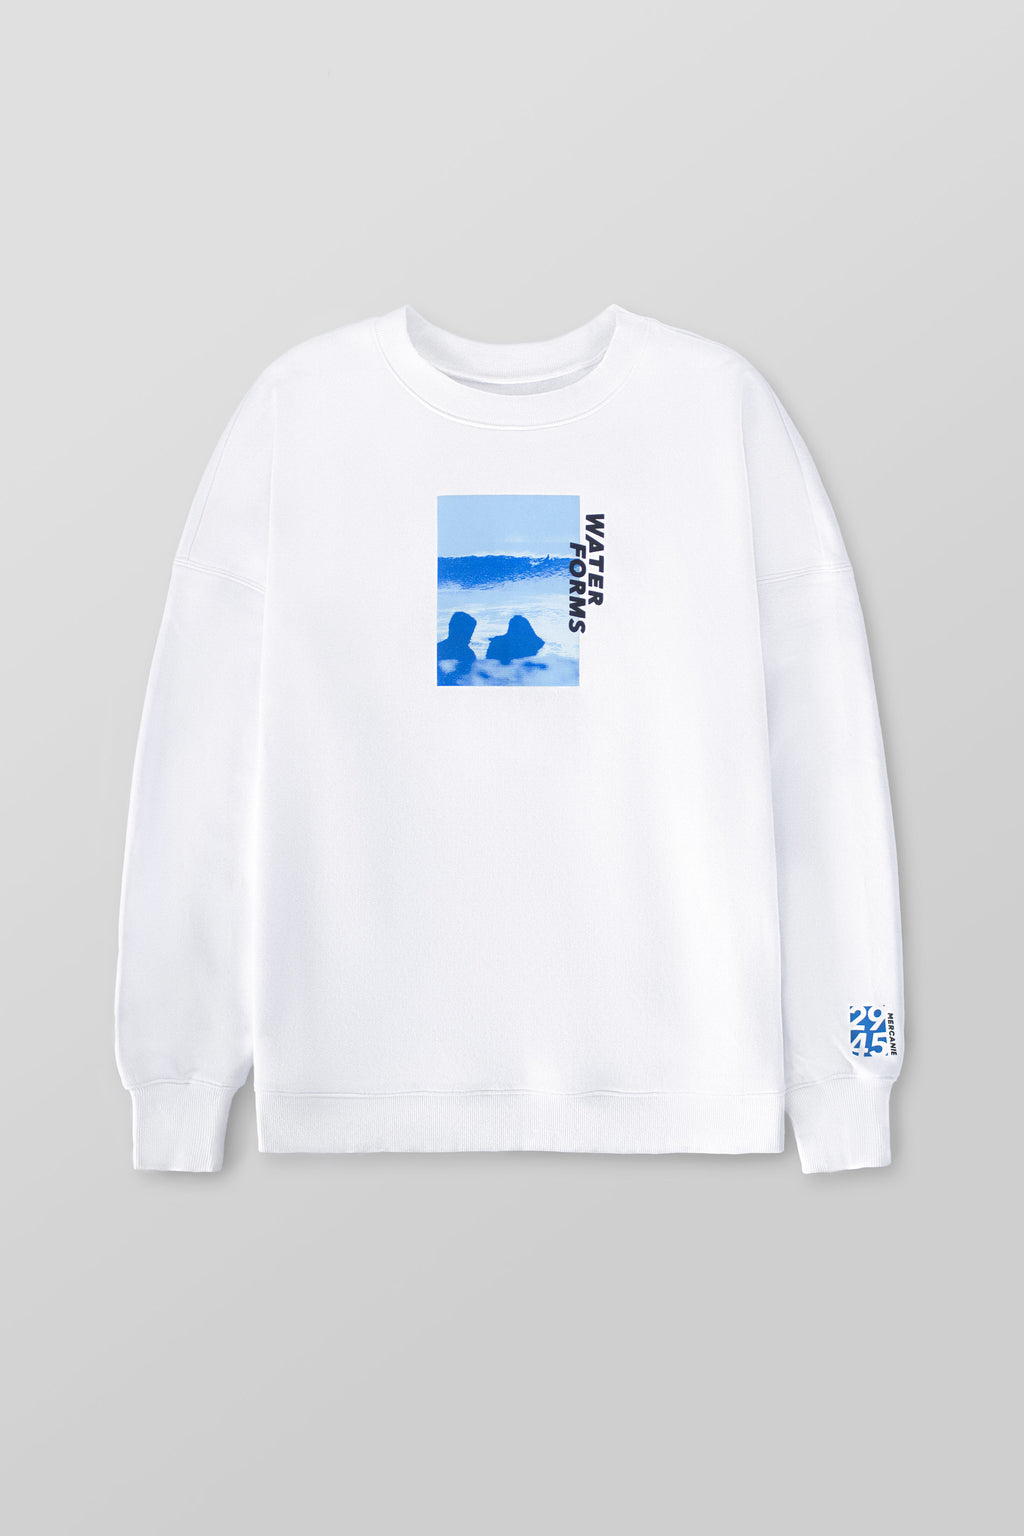 'Together by the sea' Sweatshirt (White)